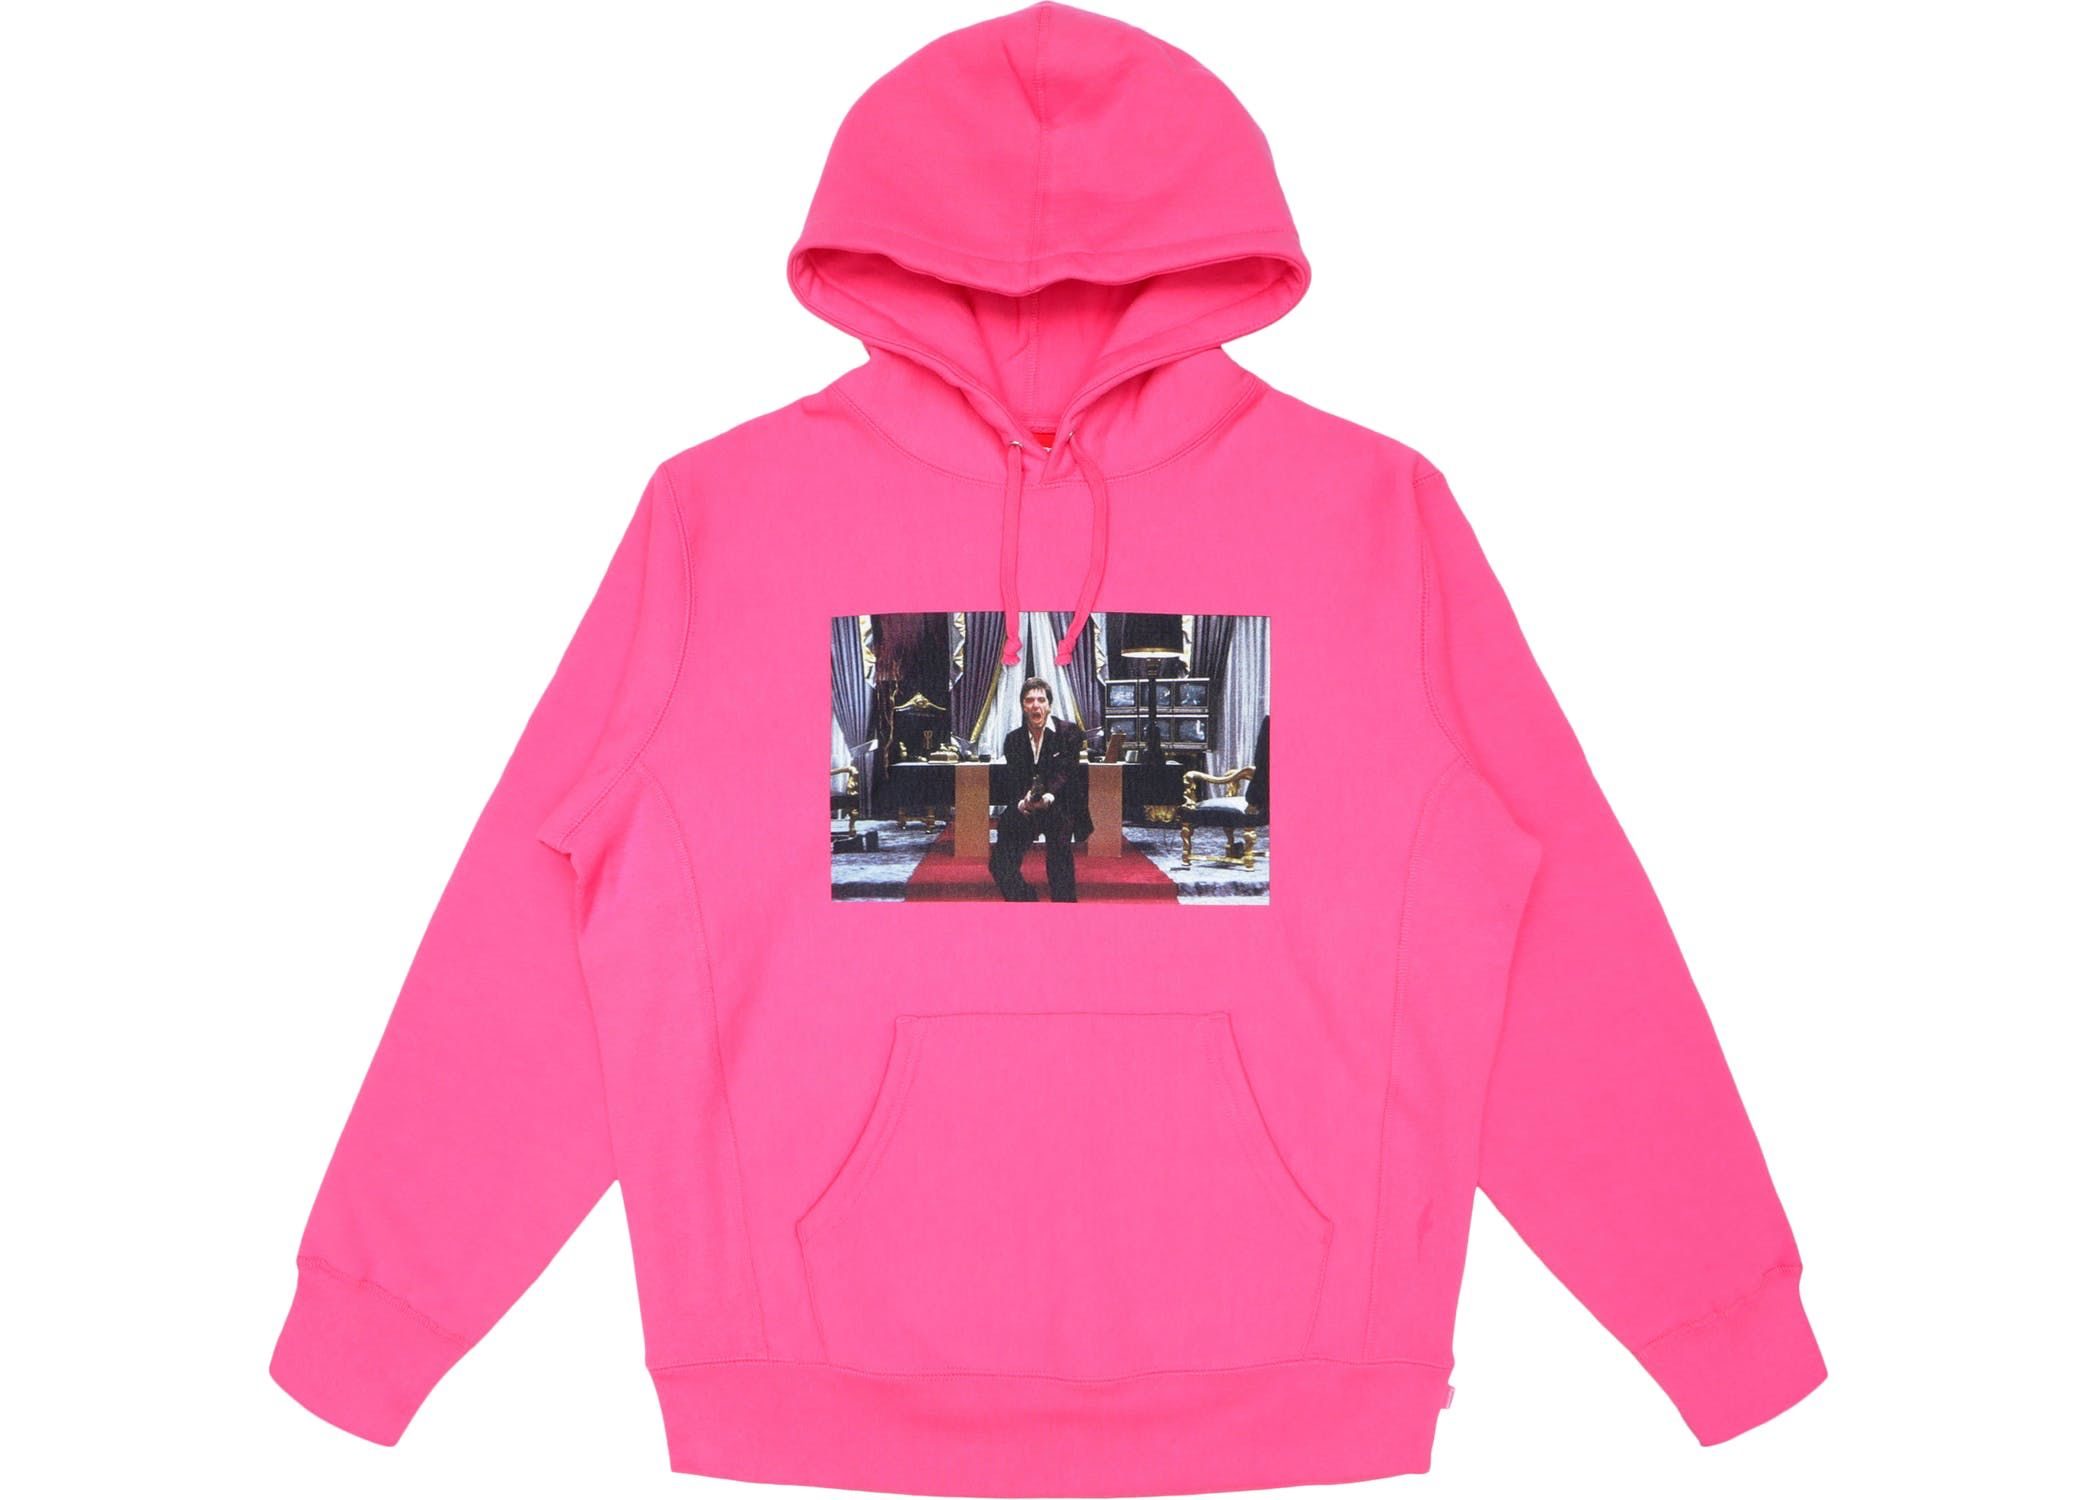 Check Out The Supreme Scarface Friend Hooded Sweatshirt Magenta Available On Stockx Sweatshirts Hooded Sweatshirts Black Sweatshirts [ 1500 x 2100 Pixel ]